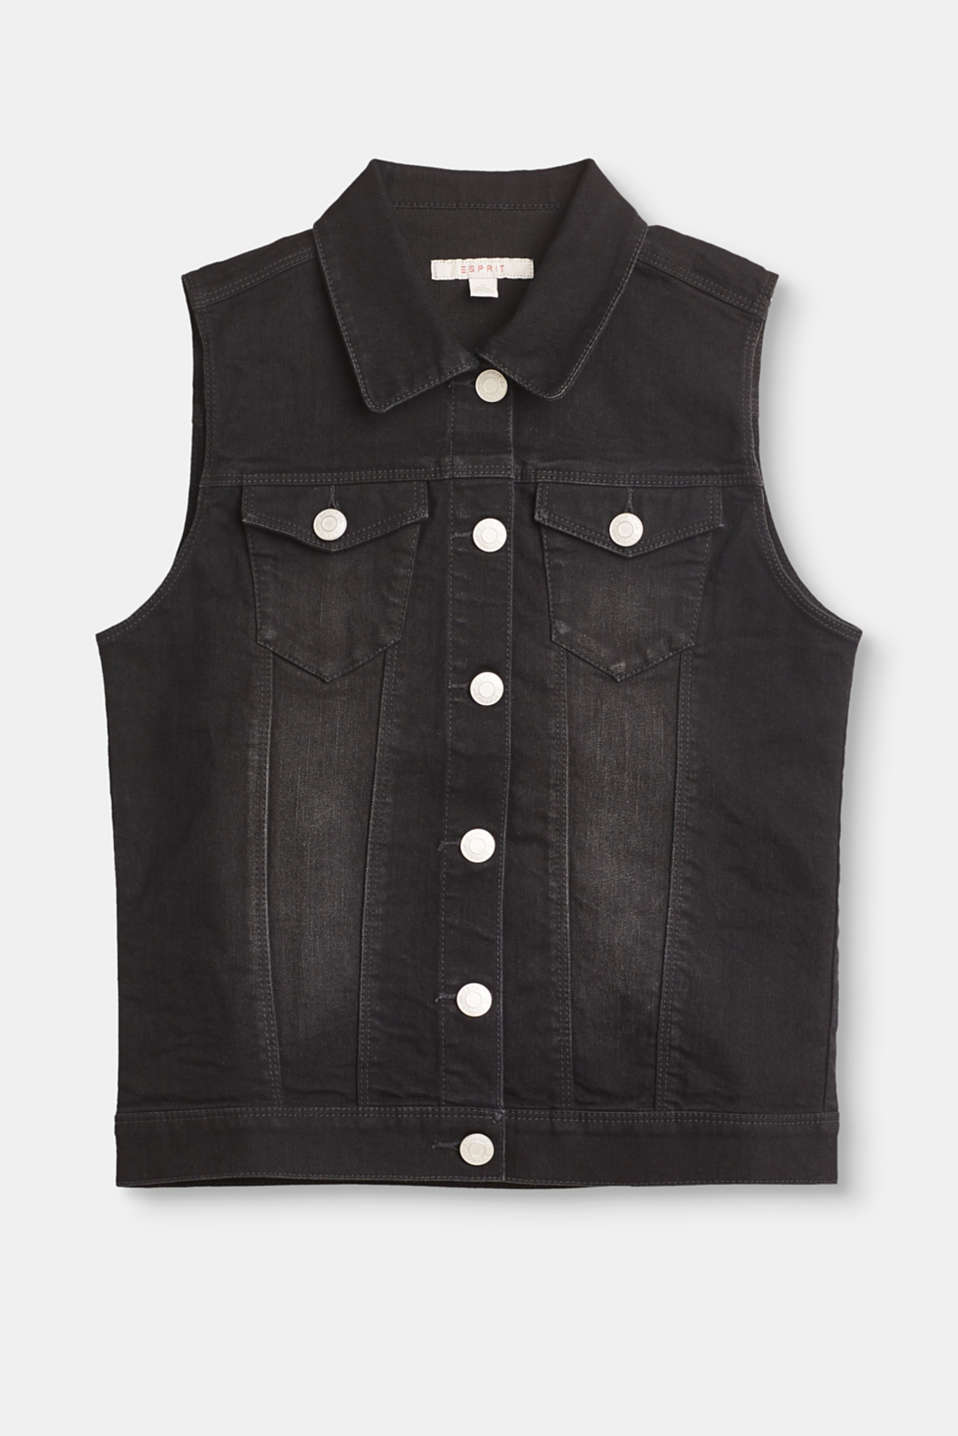 Esprit - Denim waistcoat in a stretch cotton blend